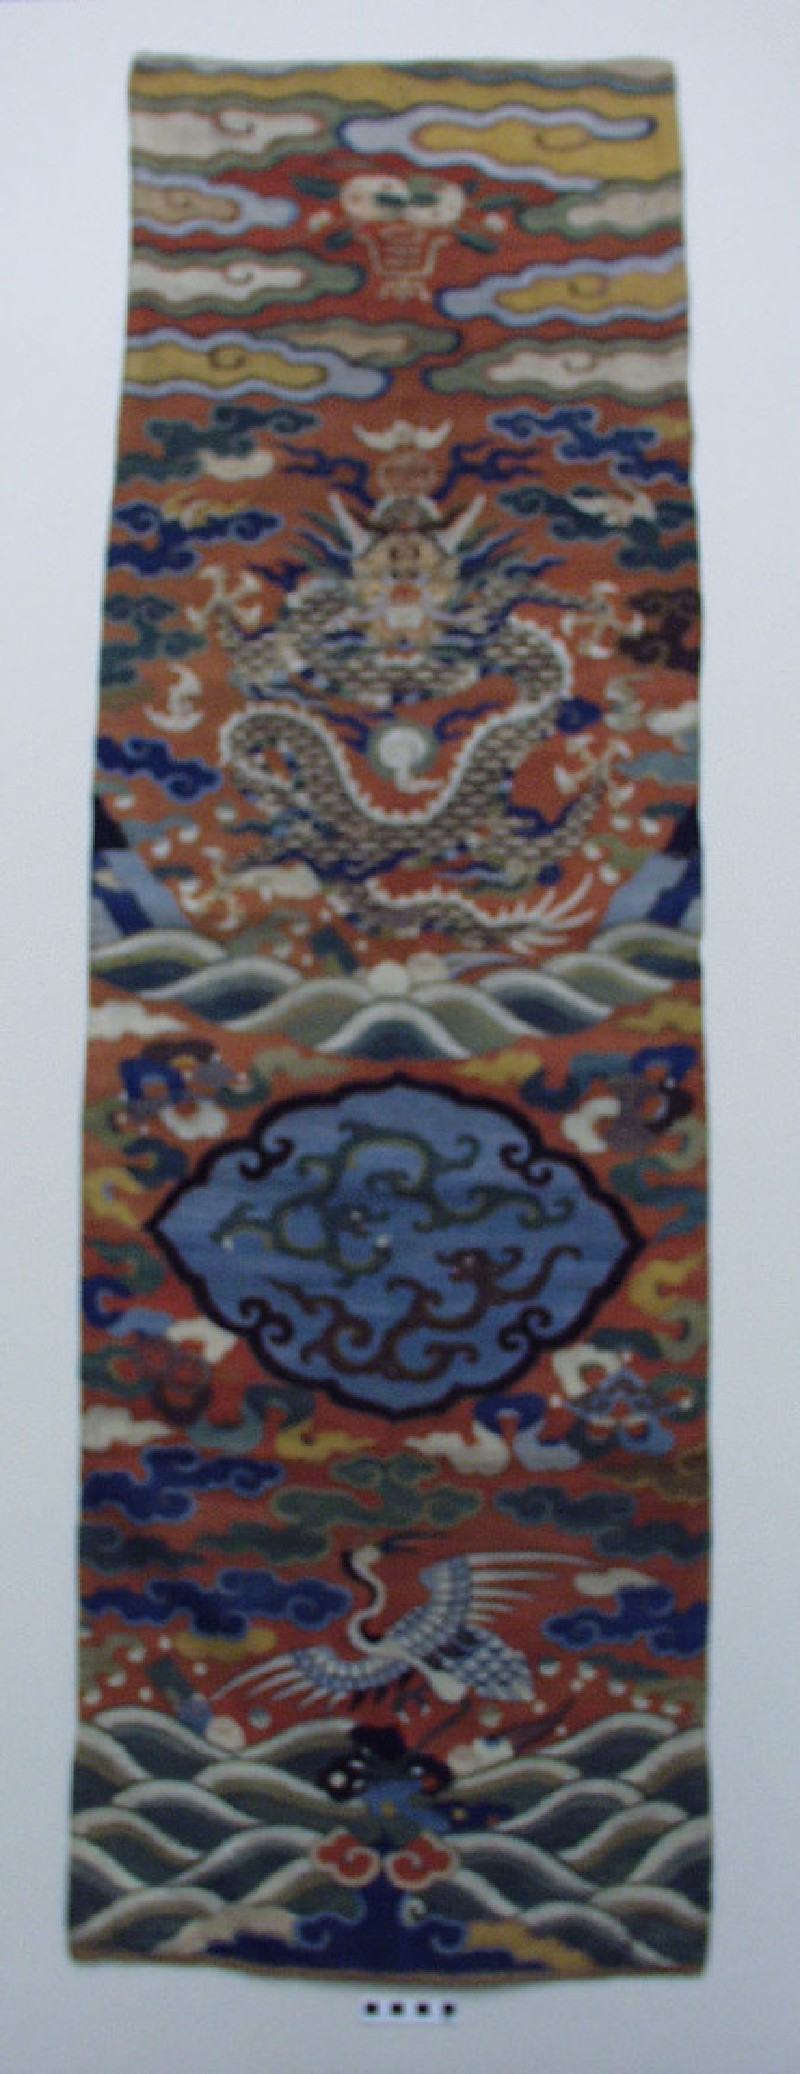 Kesi (k'o-ssu) tapestry chair panels (EA1965.94, DS, record shot)